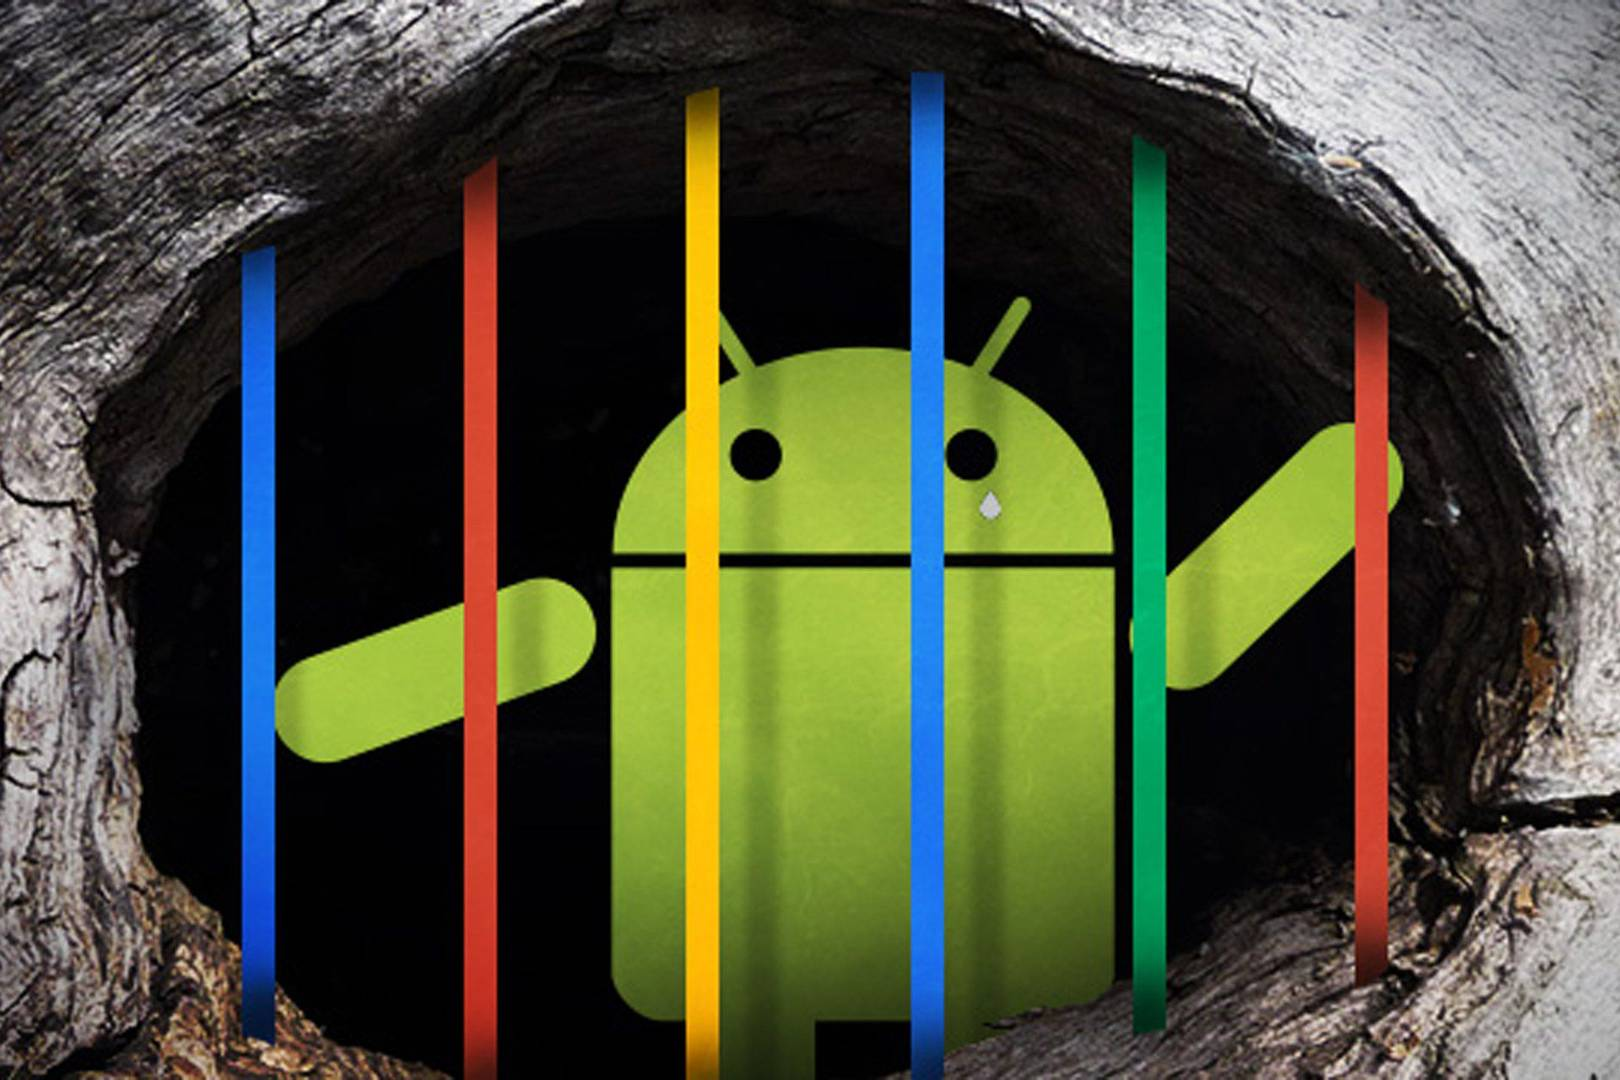 Google's iron grip on Android: controlling open source by any means necessary